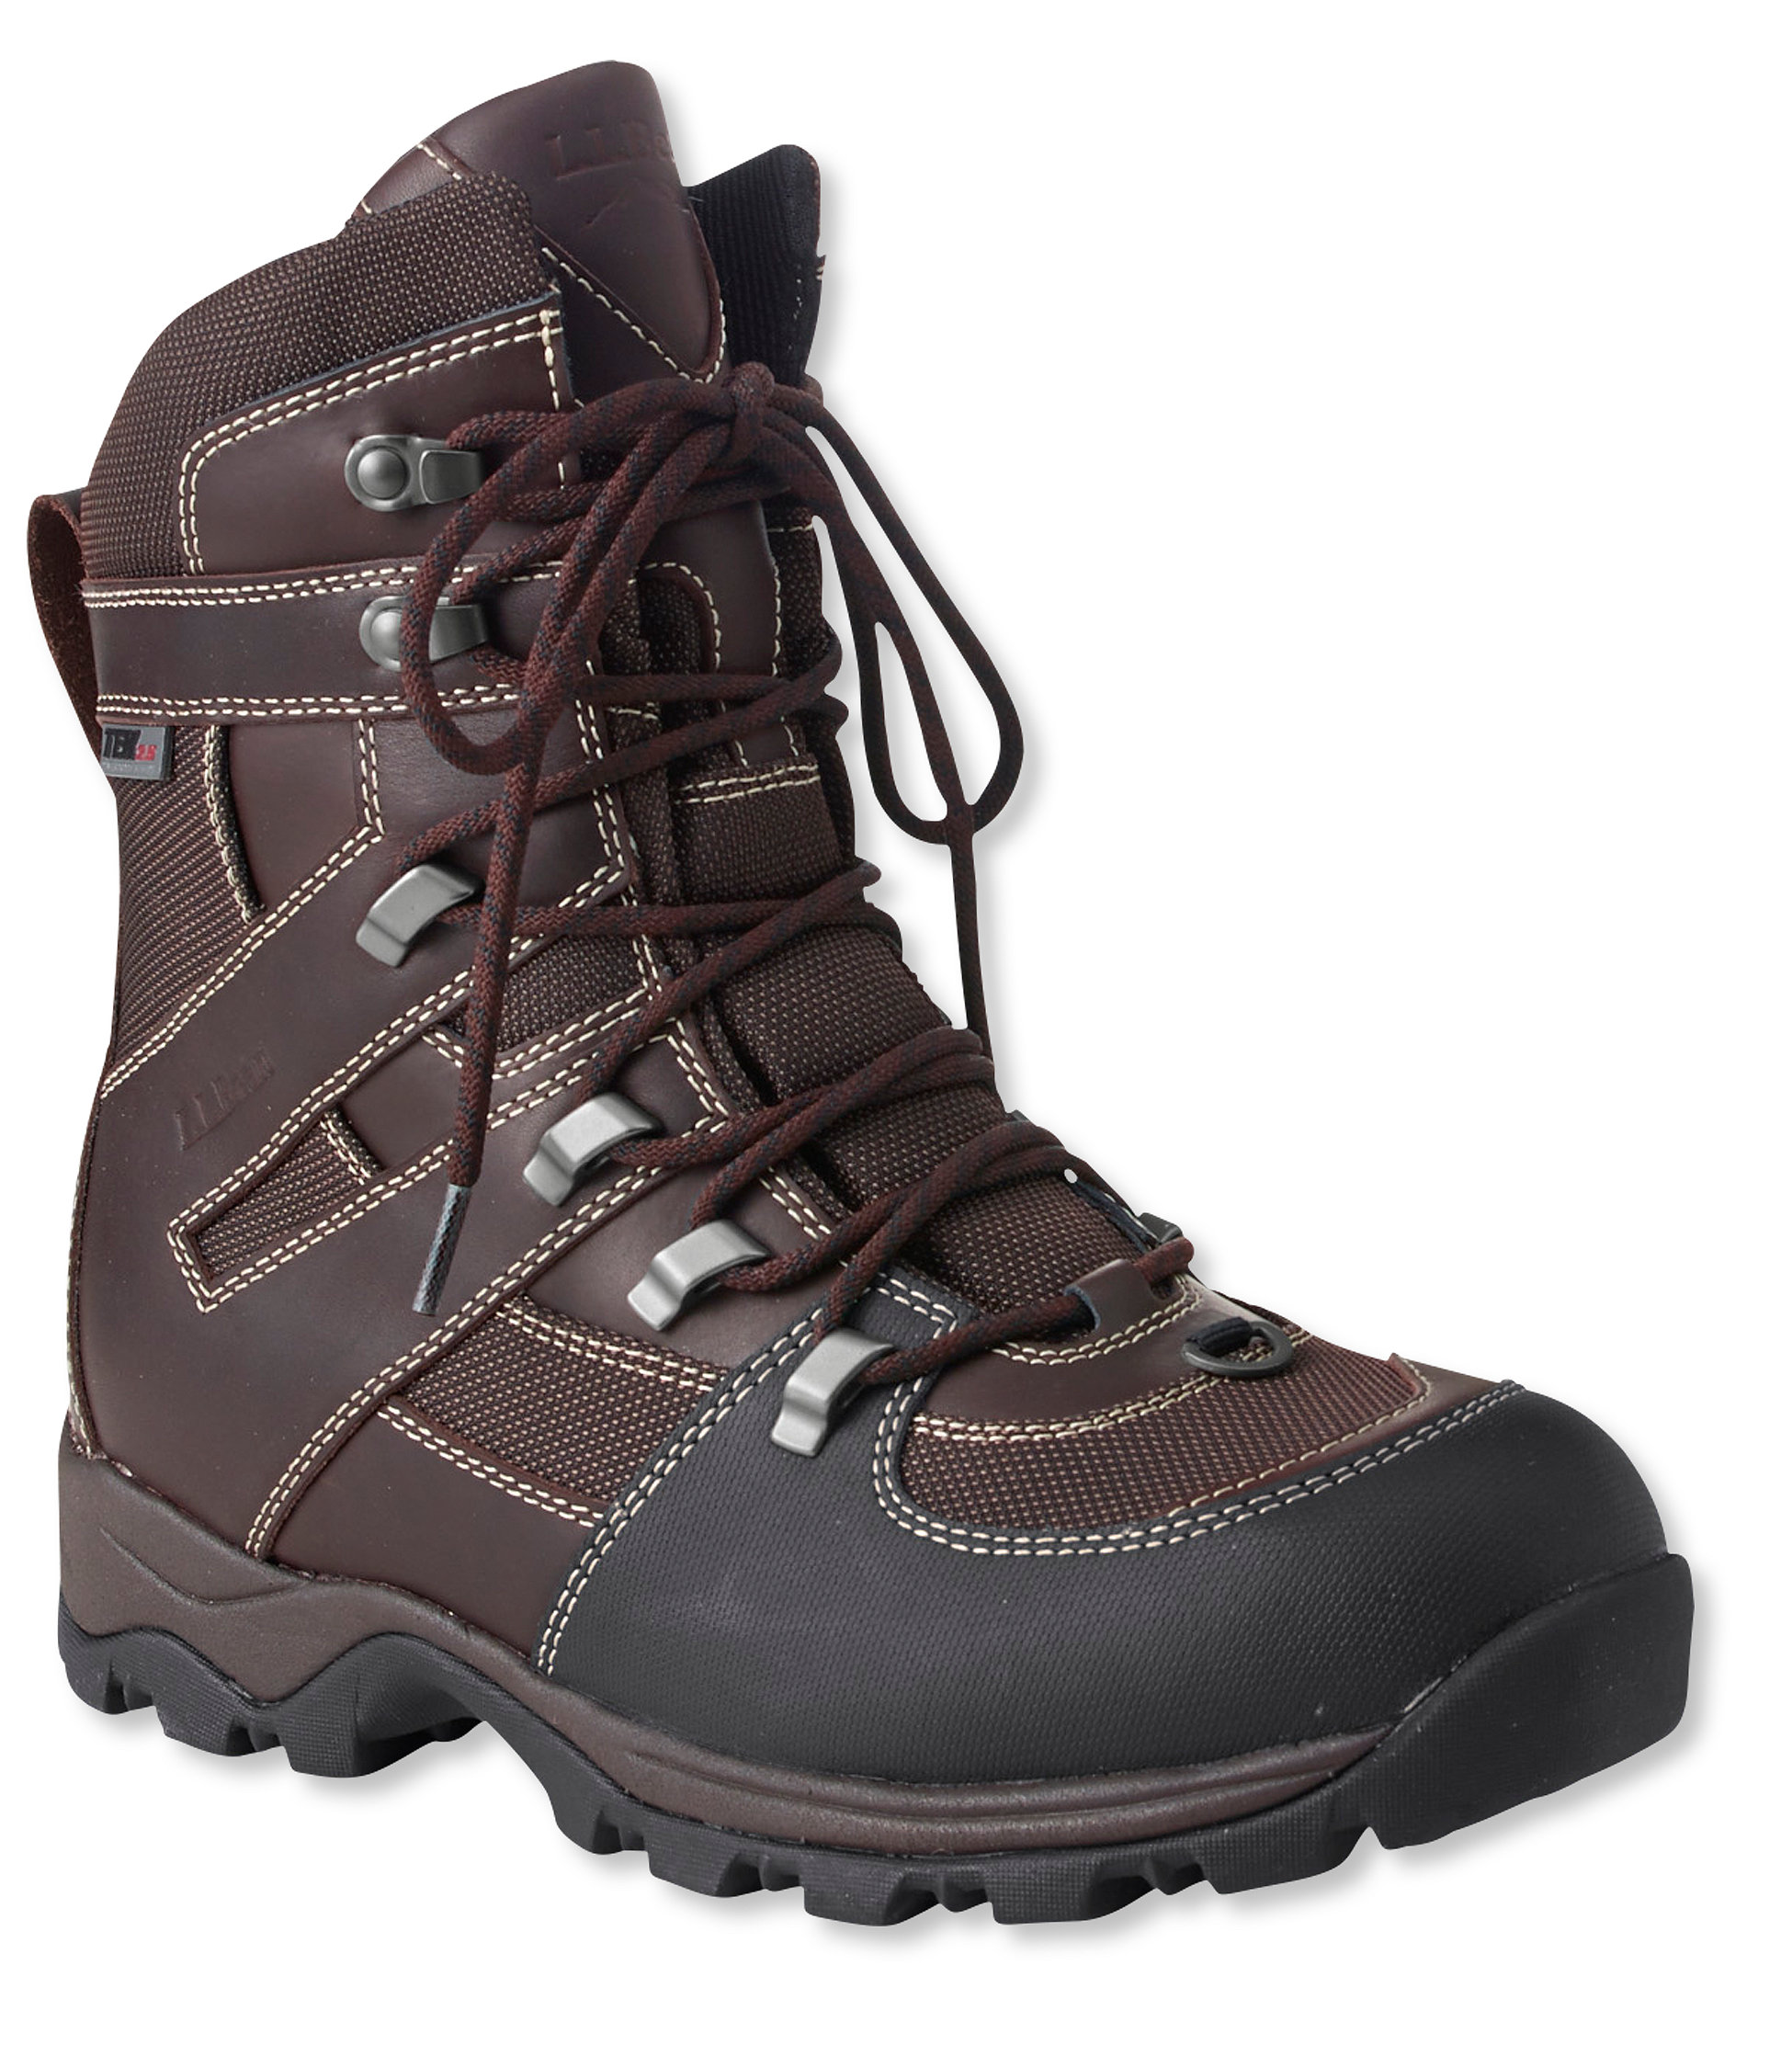 photo: L.L.Bean Wildcat Boots, Lace-Up hiking boot